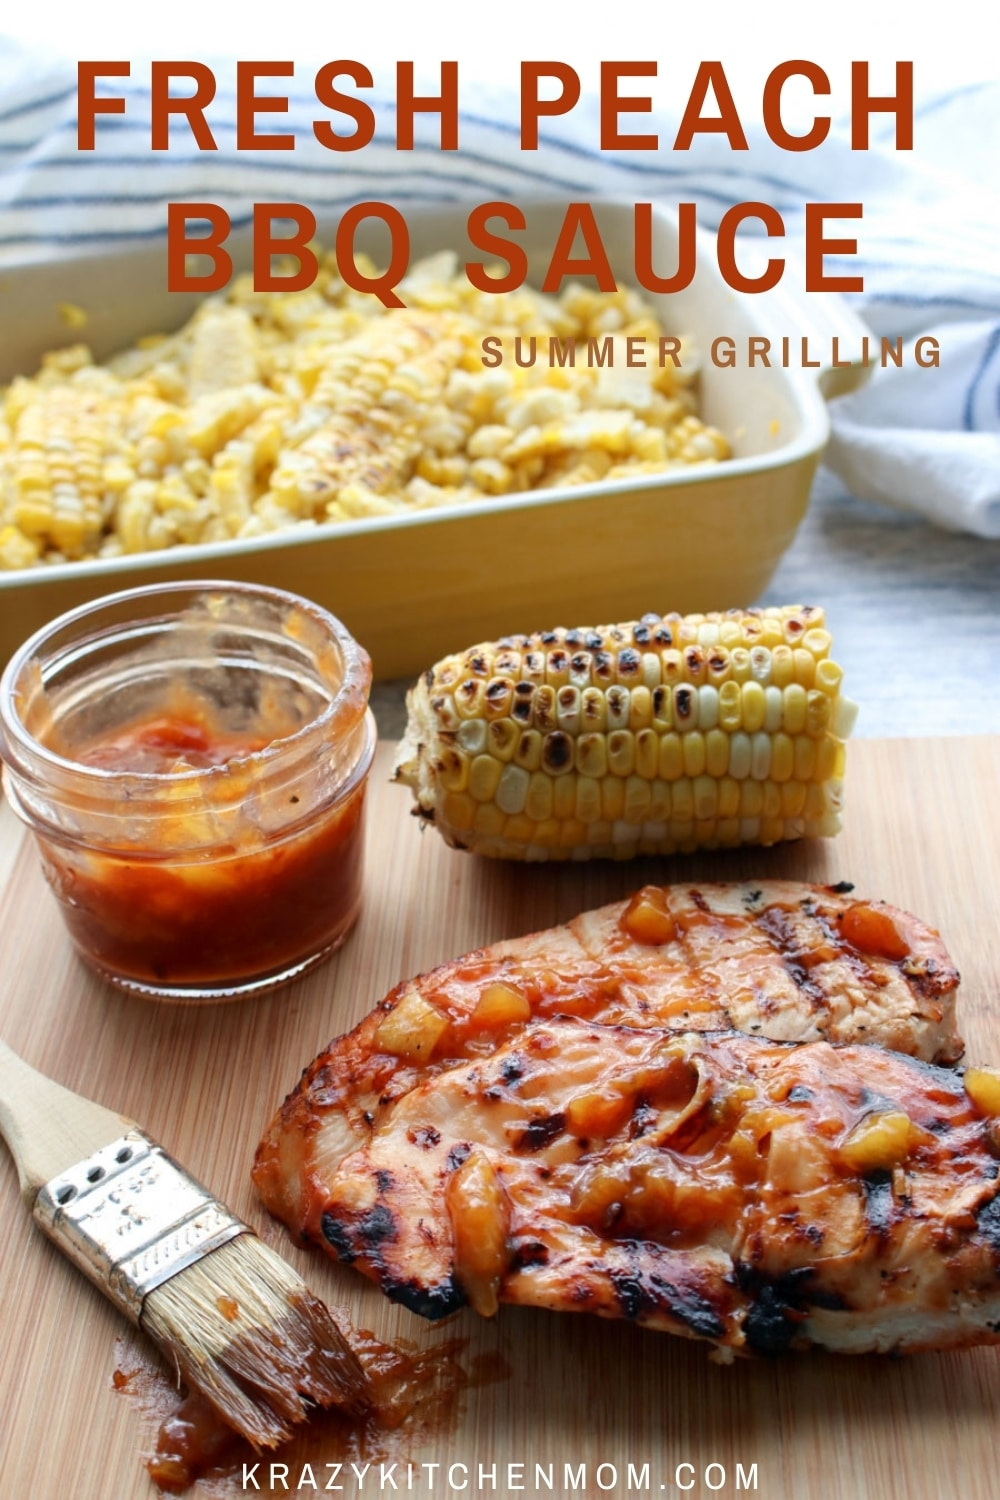 Give your store-bought BBQ sauce a zippy fresh fruity flavor by using fresh summer peaches. Slather it on everything you BBQ this summer. via @krazykitchenmom